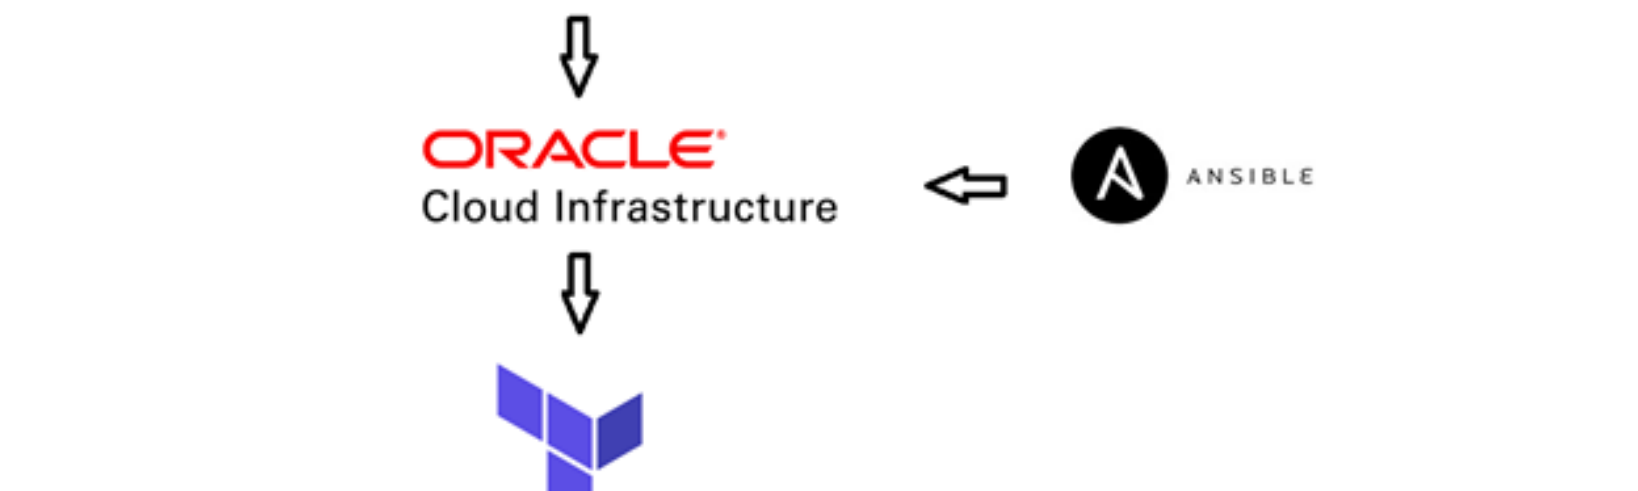 Oracle cloud infrastructure with packer, terraform and ansible